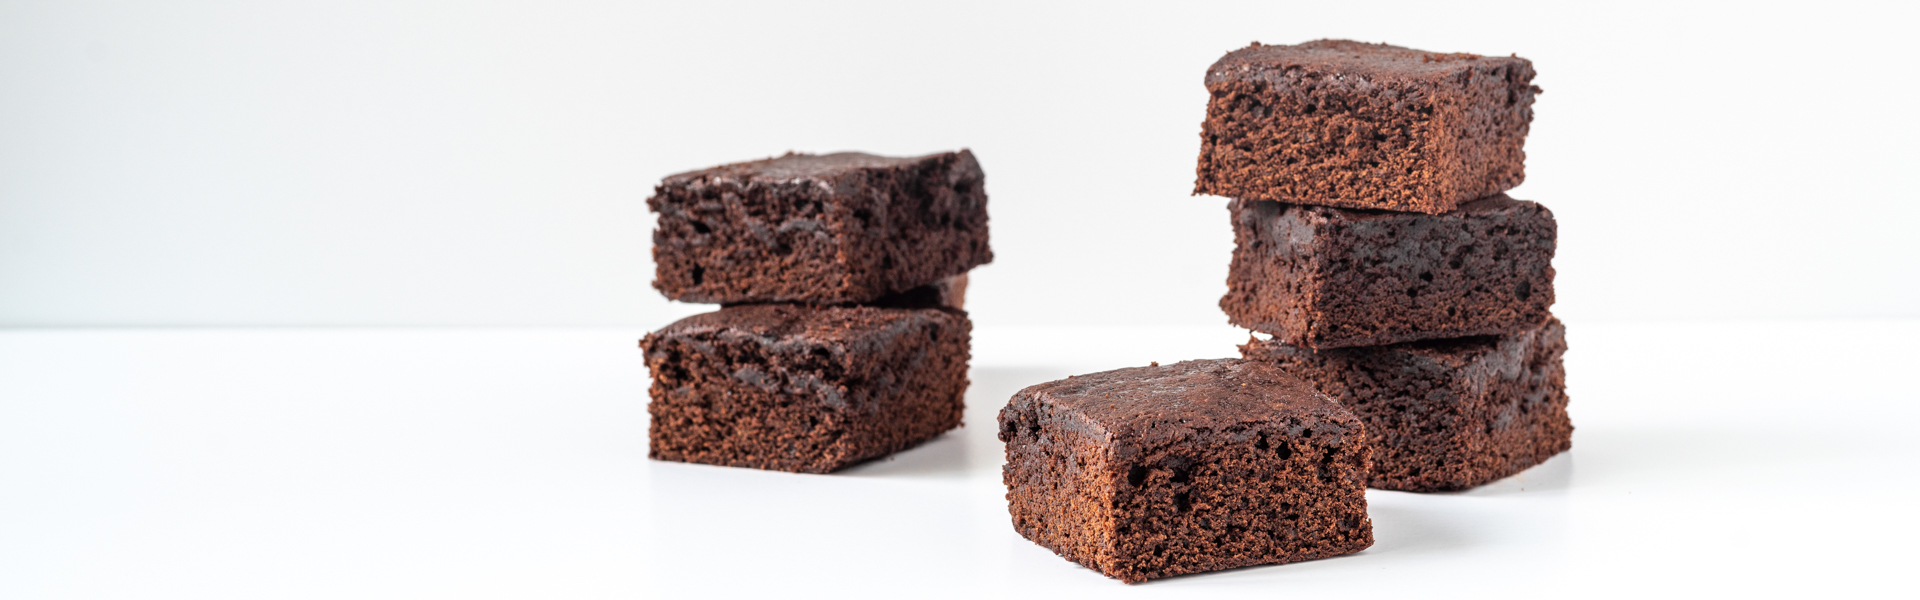 <p>Using Dried Plum Puree and Prune Juice Concentrate in brownies creates a chewy, chocolaty texture with 50% less butter and 17% less cane sugar. Adding almond flour helps make up for lost bulk while maintaining a soft crumb. For a gluten-free version, use gluten-free flour. No xanthan gum is needed in the blend to hold […]</p>